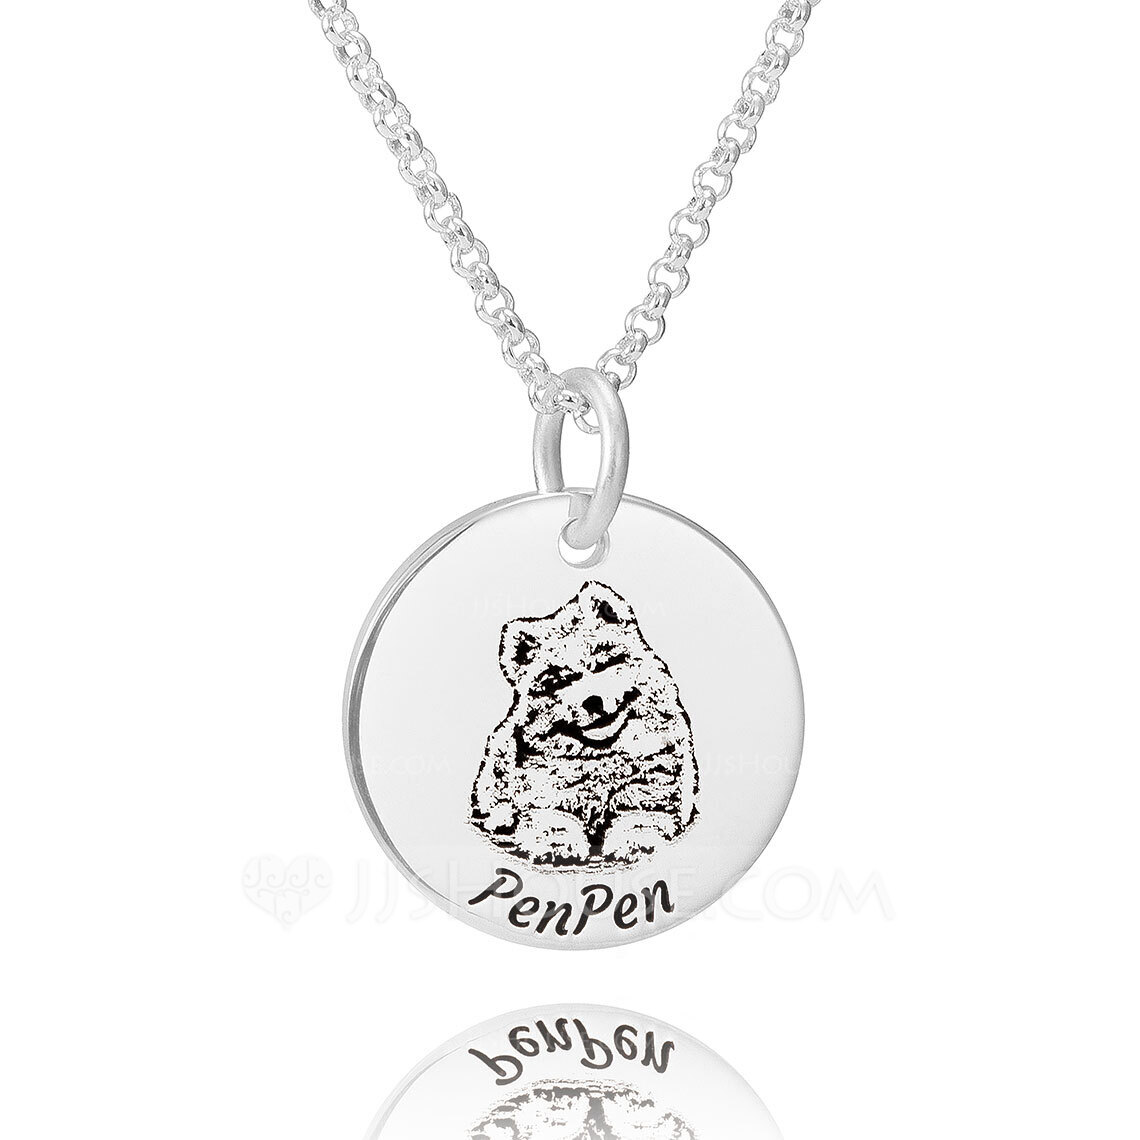 Custom Sterling Silver Engraving/Engraved Circle Engraved Necklace Circle Necklace Photo Necklace - Birthday Gifts